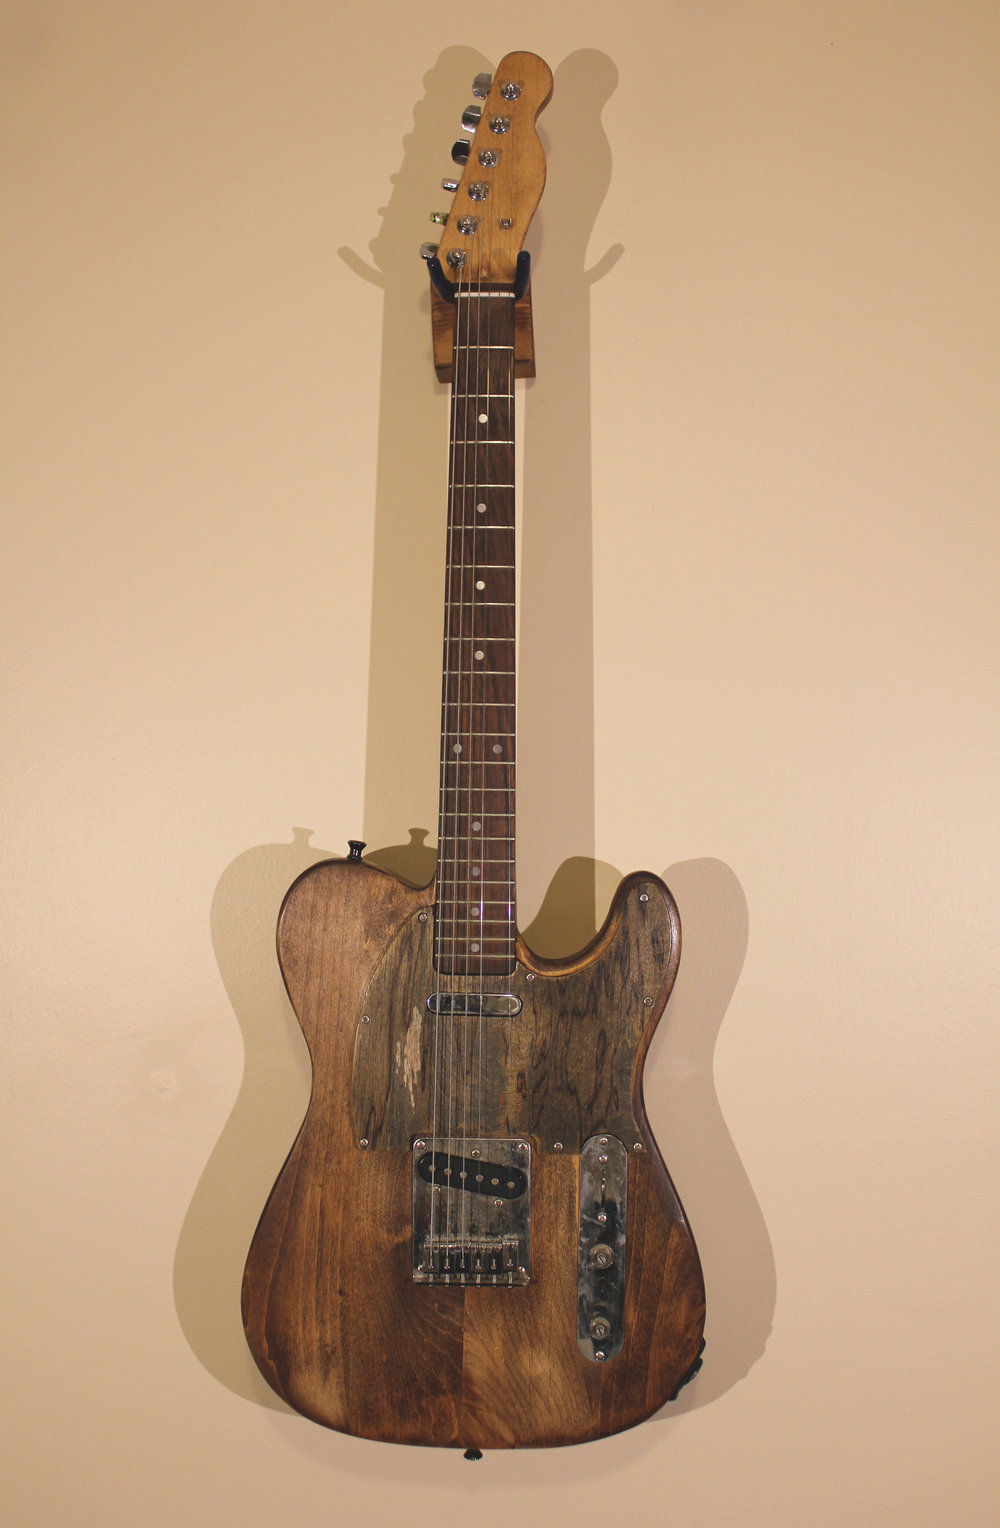 Tele Custom   -not for sale- squier telecaster, woodstain, birch panel pickguard, sealer